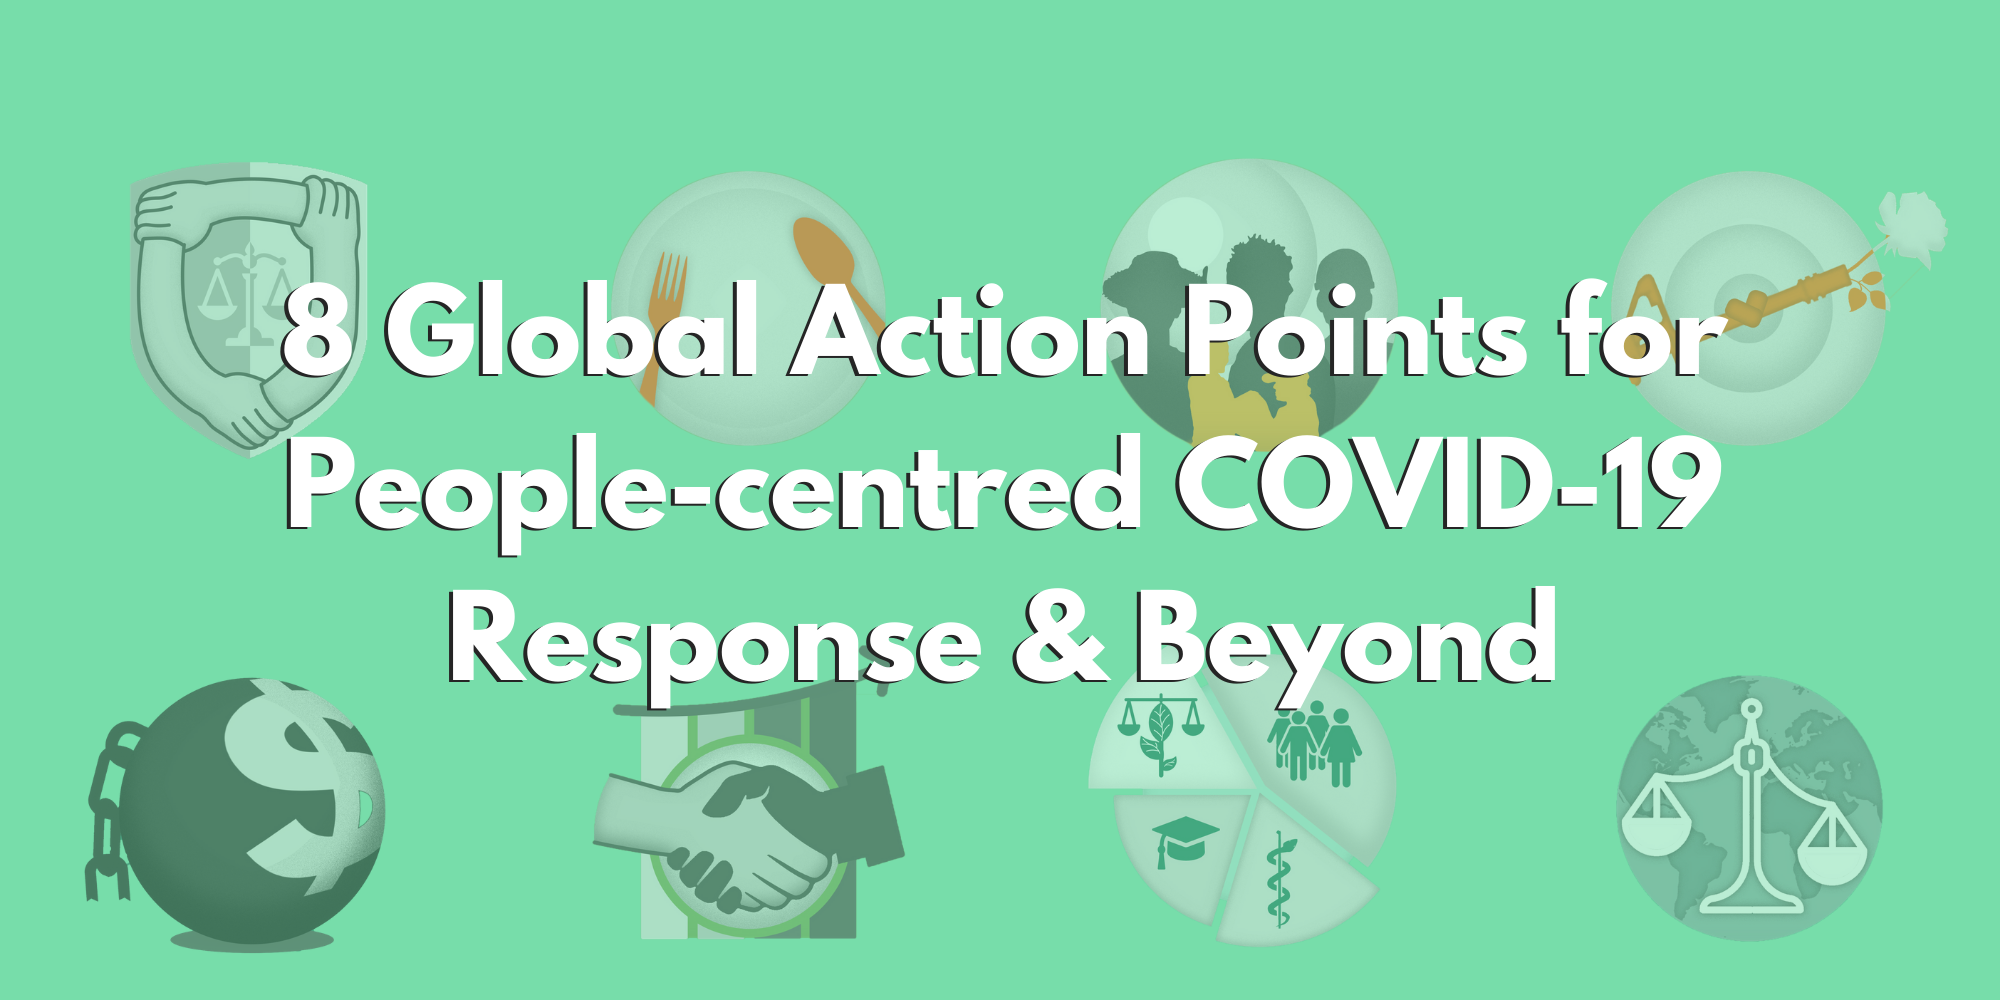 Eight Global Action Points for People-centred COVID-19 Response & Beyond